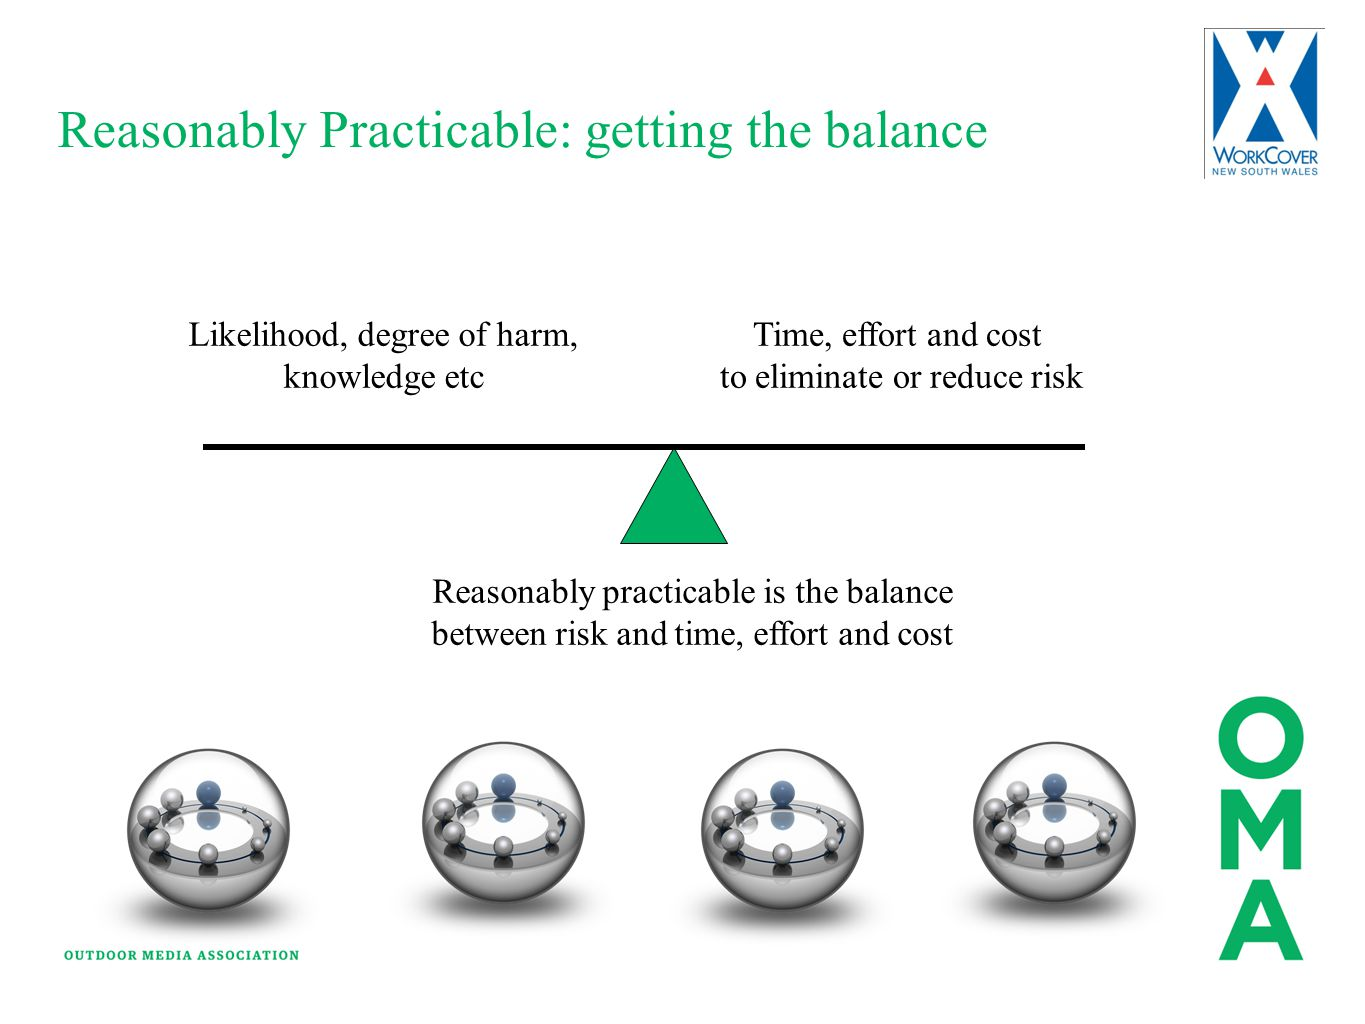 Reasonably Practicable: getting the balance